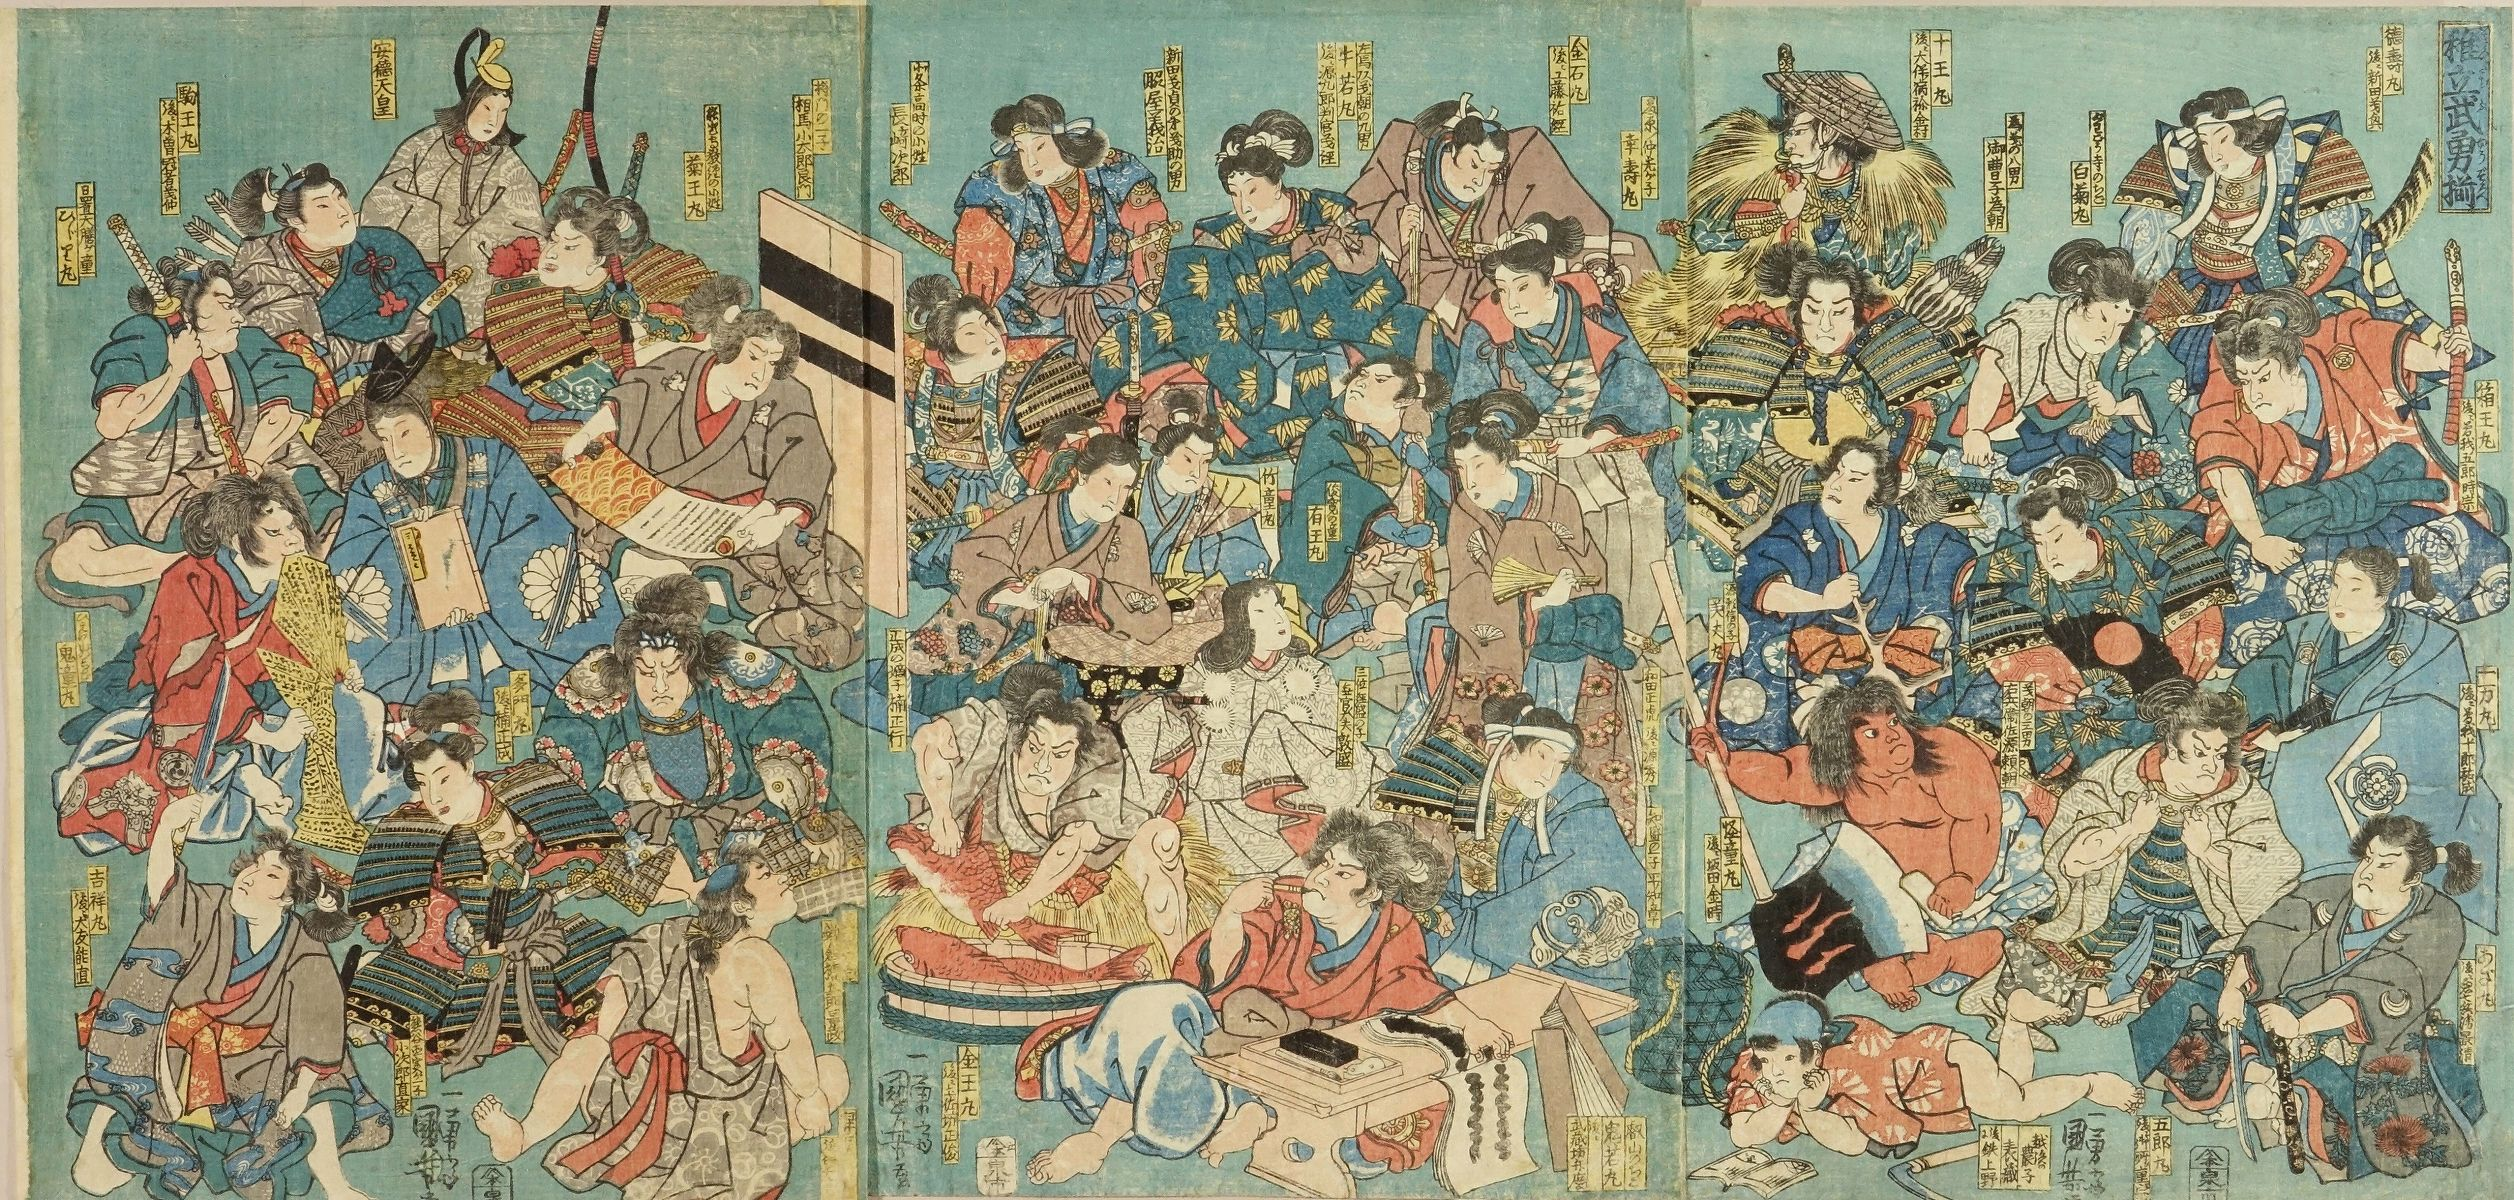 KUNIYOSHI <i>Osanadachi buyu soroi</i> (Collection of heroes in their childhood), triptych